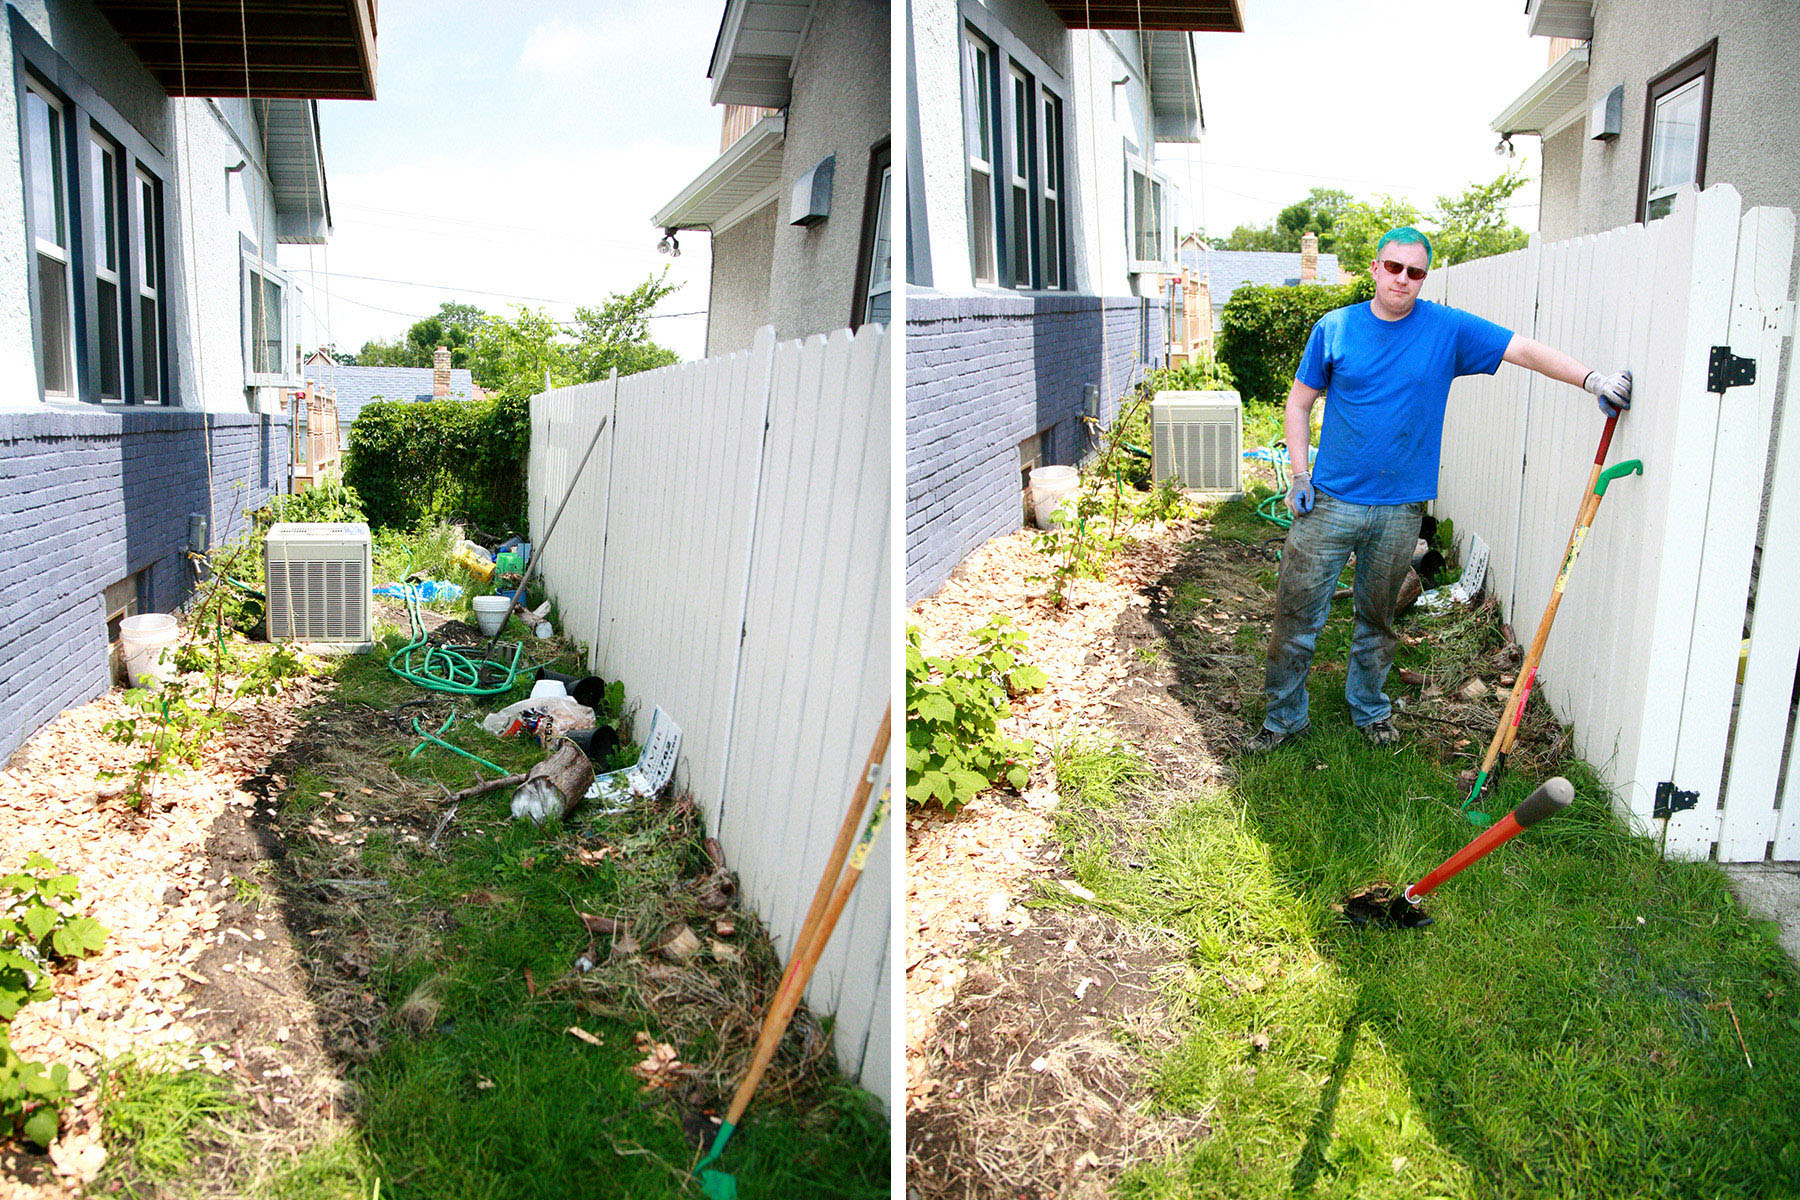 A man with a garden hoe is cleaning up the tornado debris.